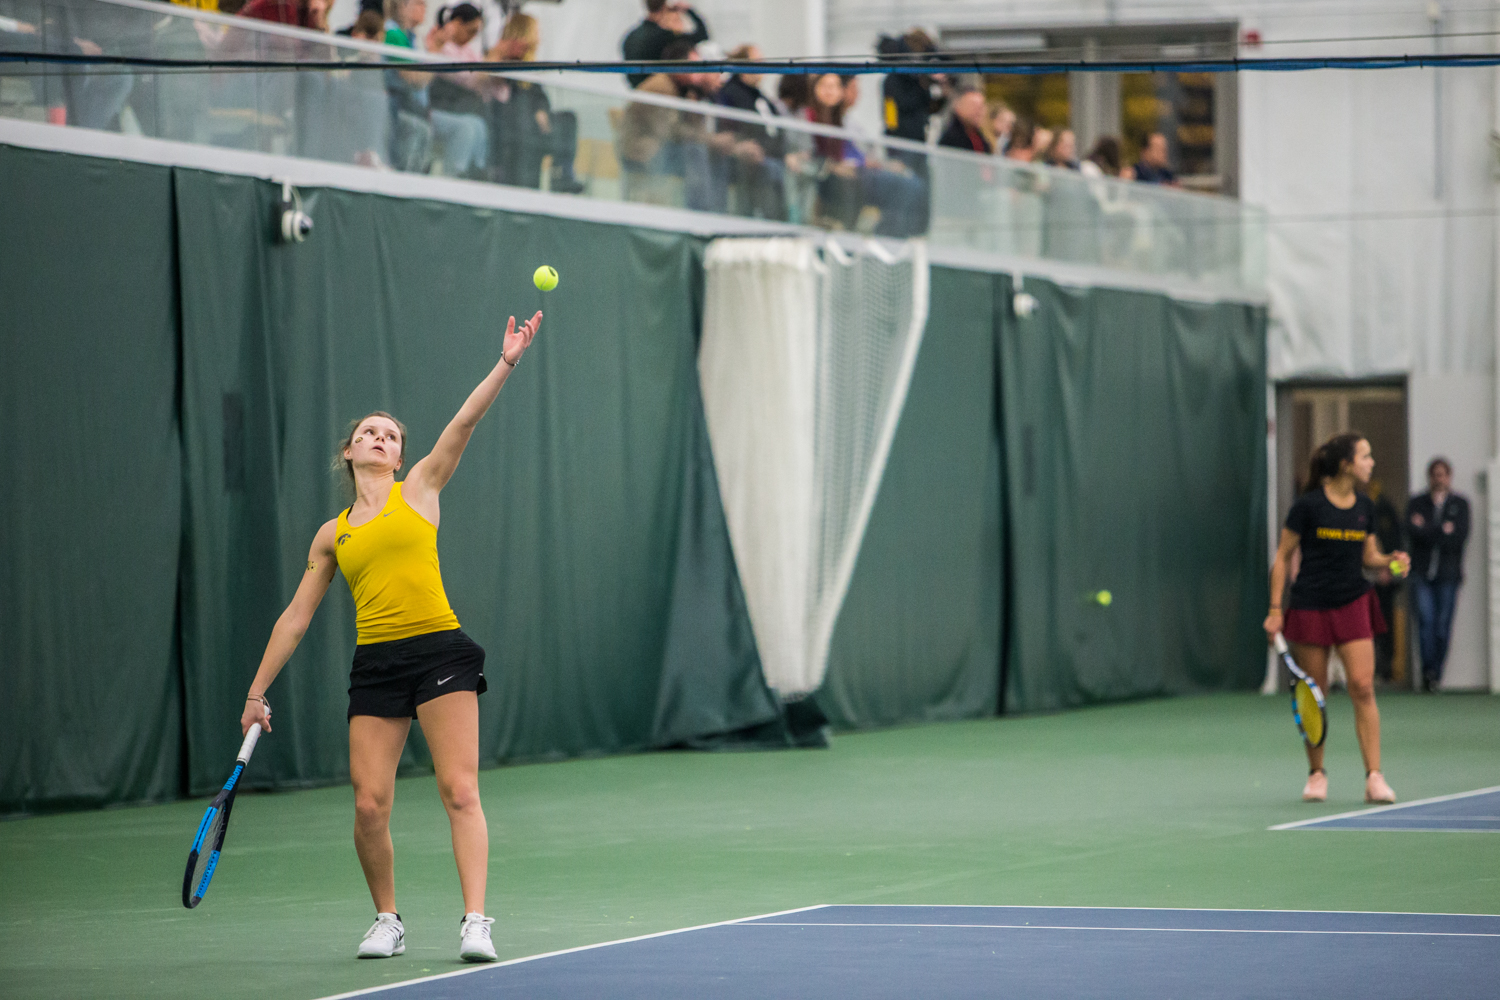 Iowa%27s+Cloe+Ruette+serves+during+a+women%27s+tennis+matchup+between+Iowa+and+Iowa+State+at+the+Hawkeye+Tennis+and+Recreation+Complex+on+Friday%2C+February+8%2C+2019.++The+Hawkeyes+dropped+the+doubles+point+but+swept+singles+matches%2C+defeating+the+Cyclones+4-1.